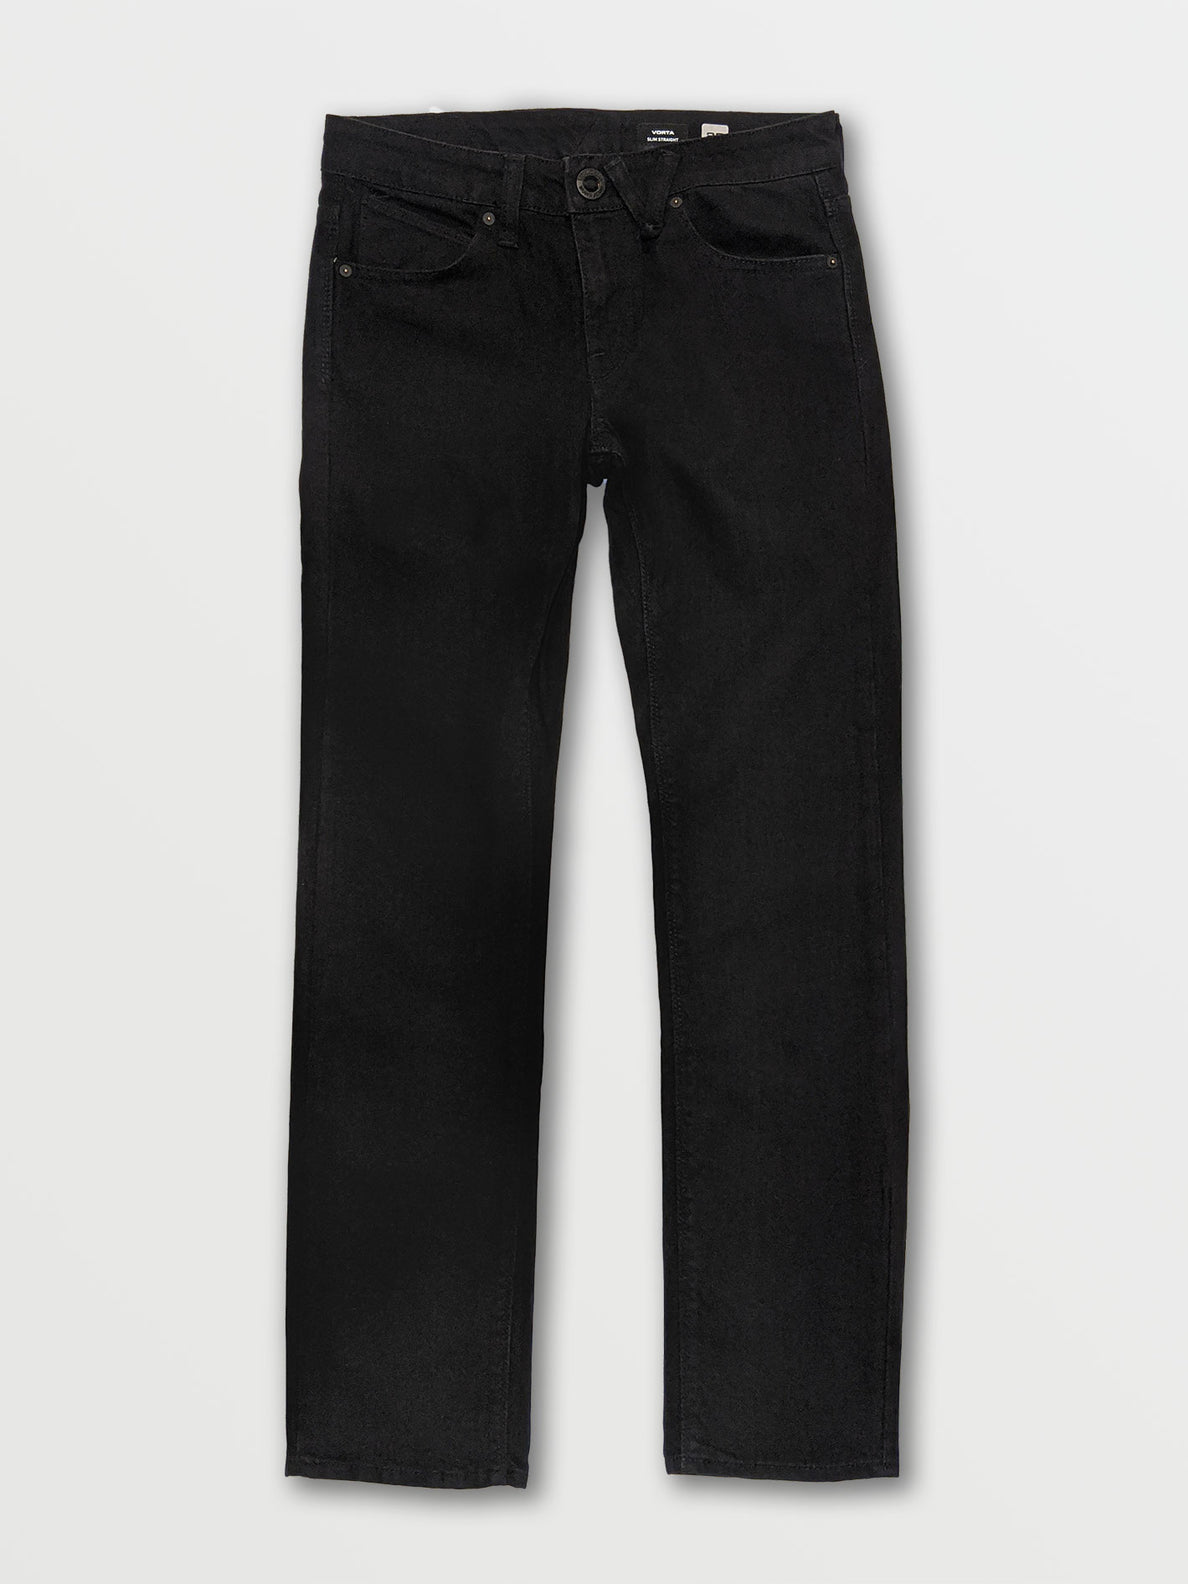 V Slim Stretch Jeans - Black